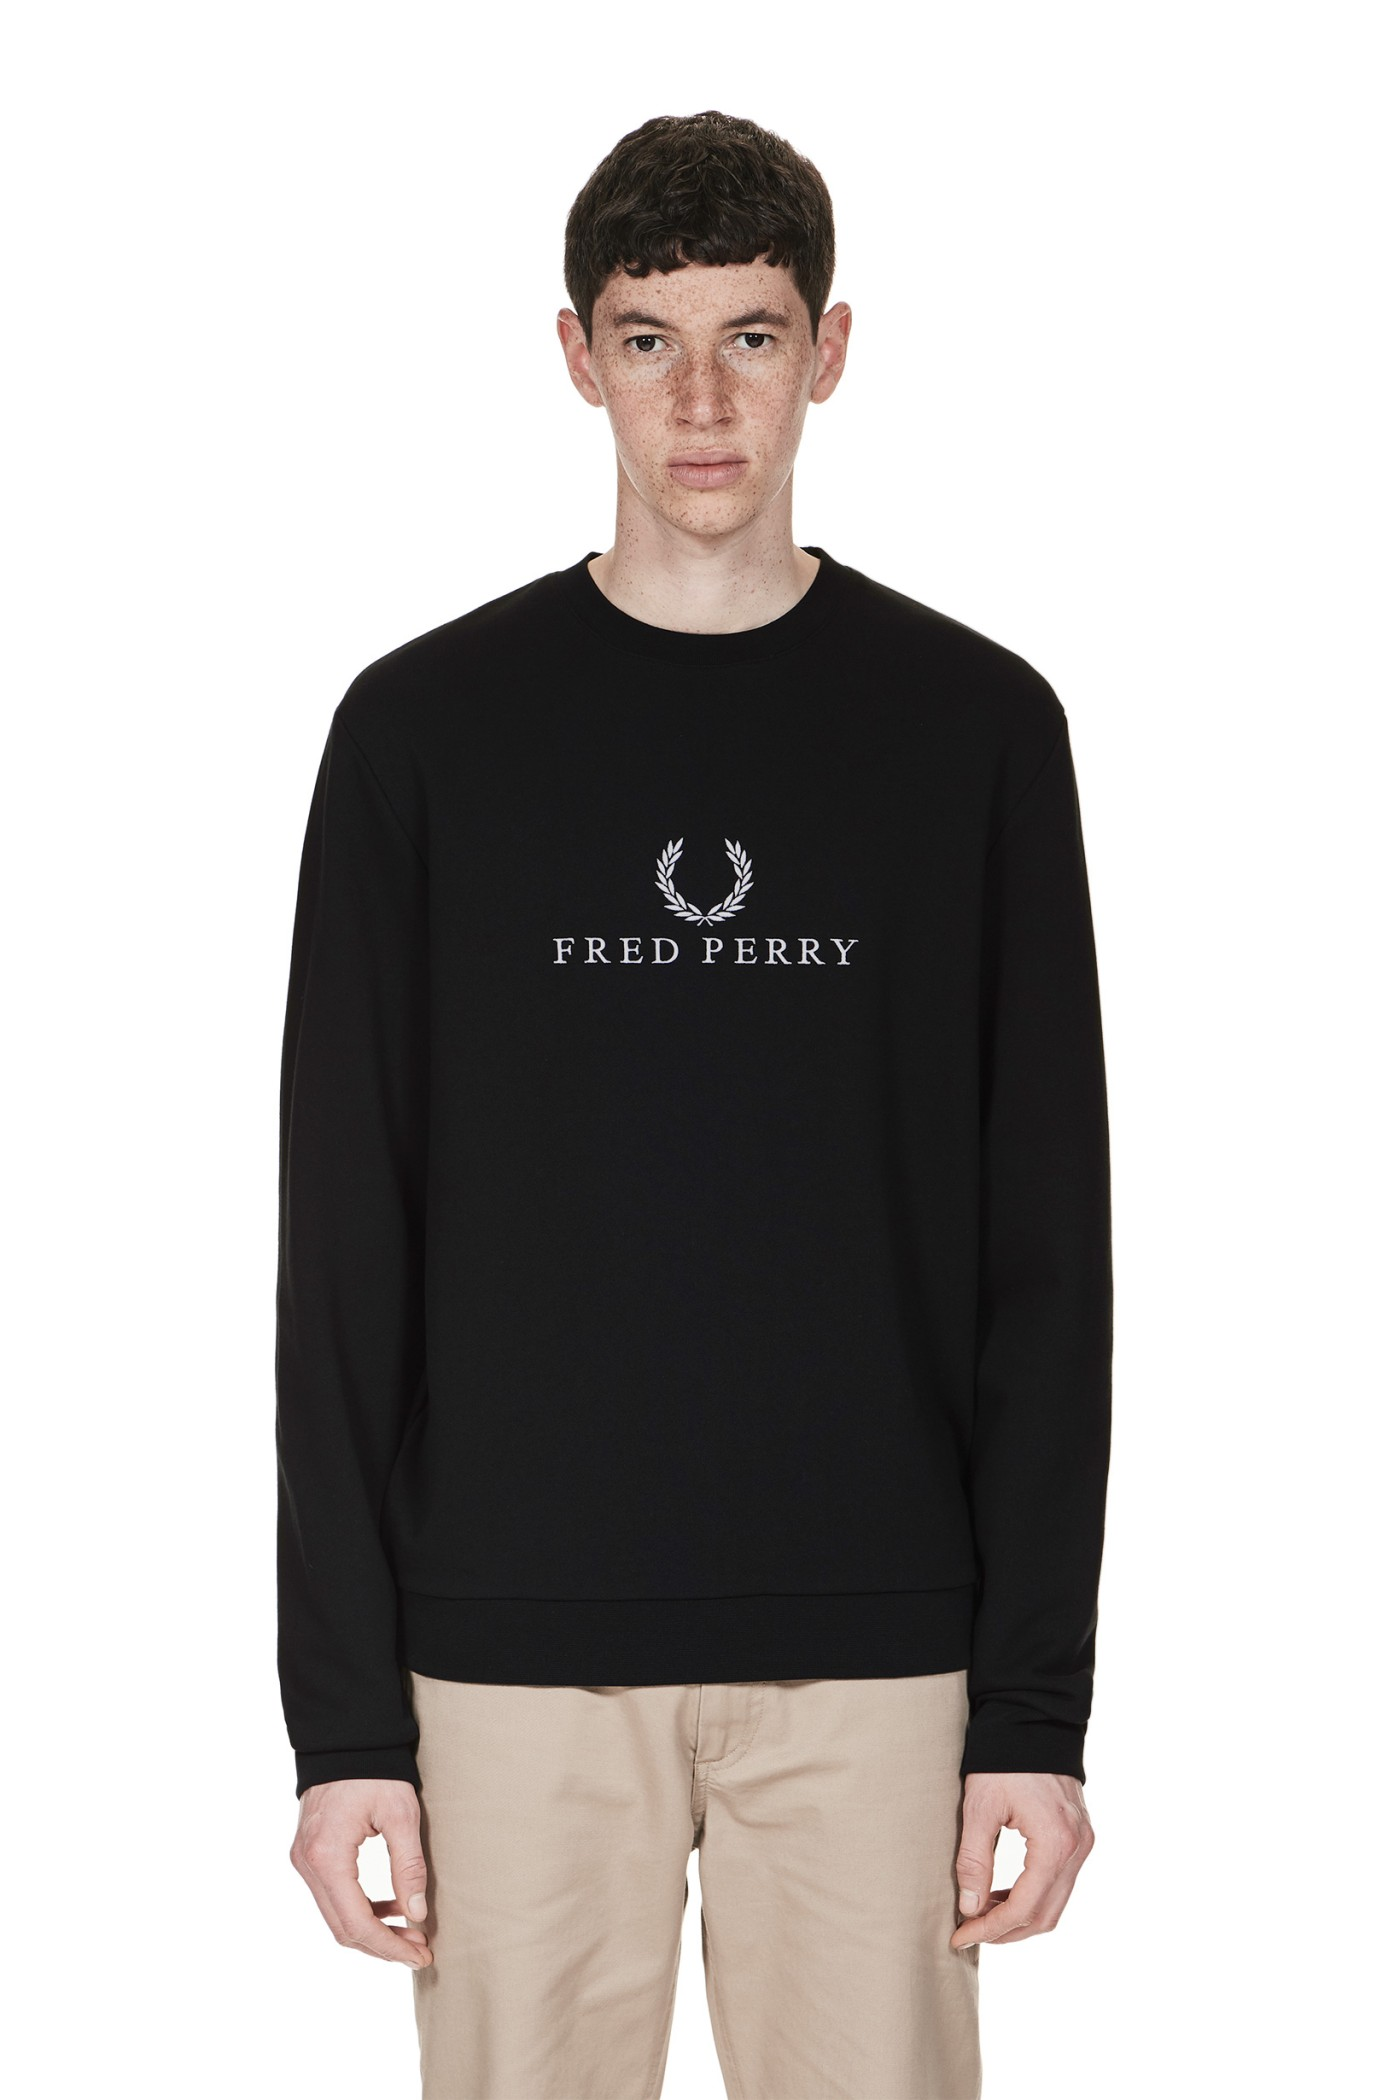 fred perry fred perry logo tennis sweatshirt black. Black Bedroom Furniture Sets. Home Design Ideas